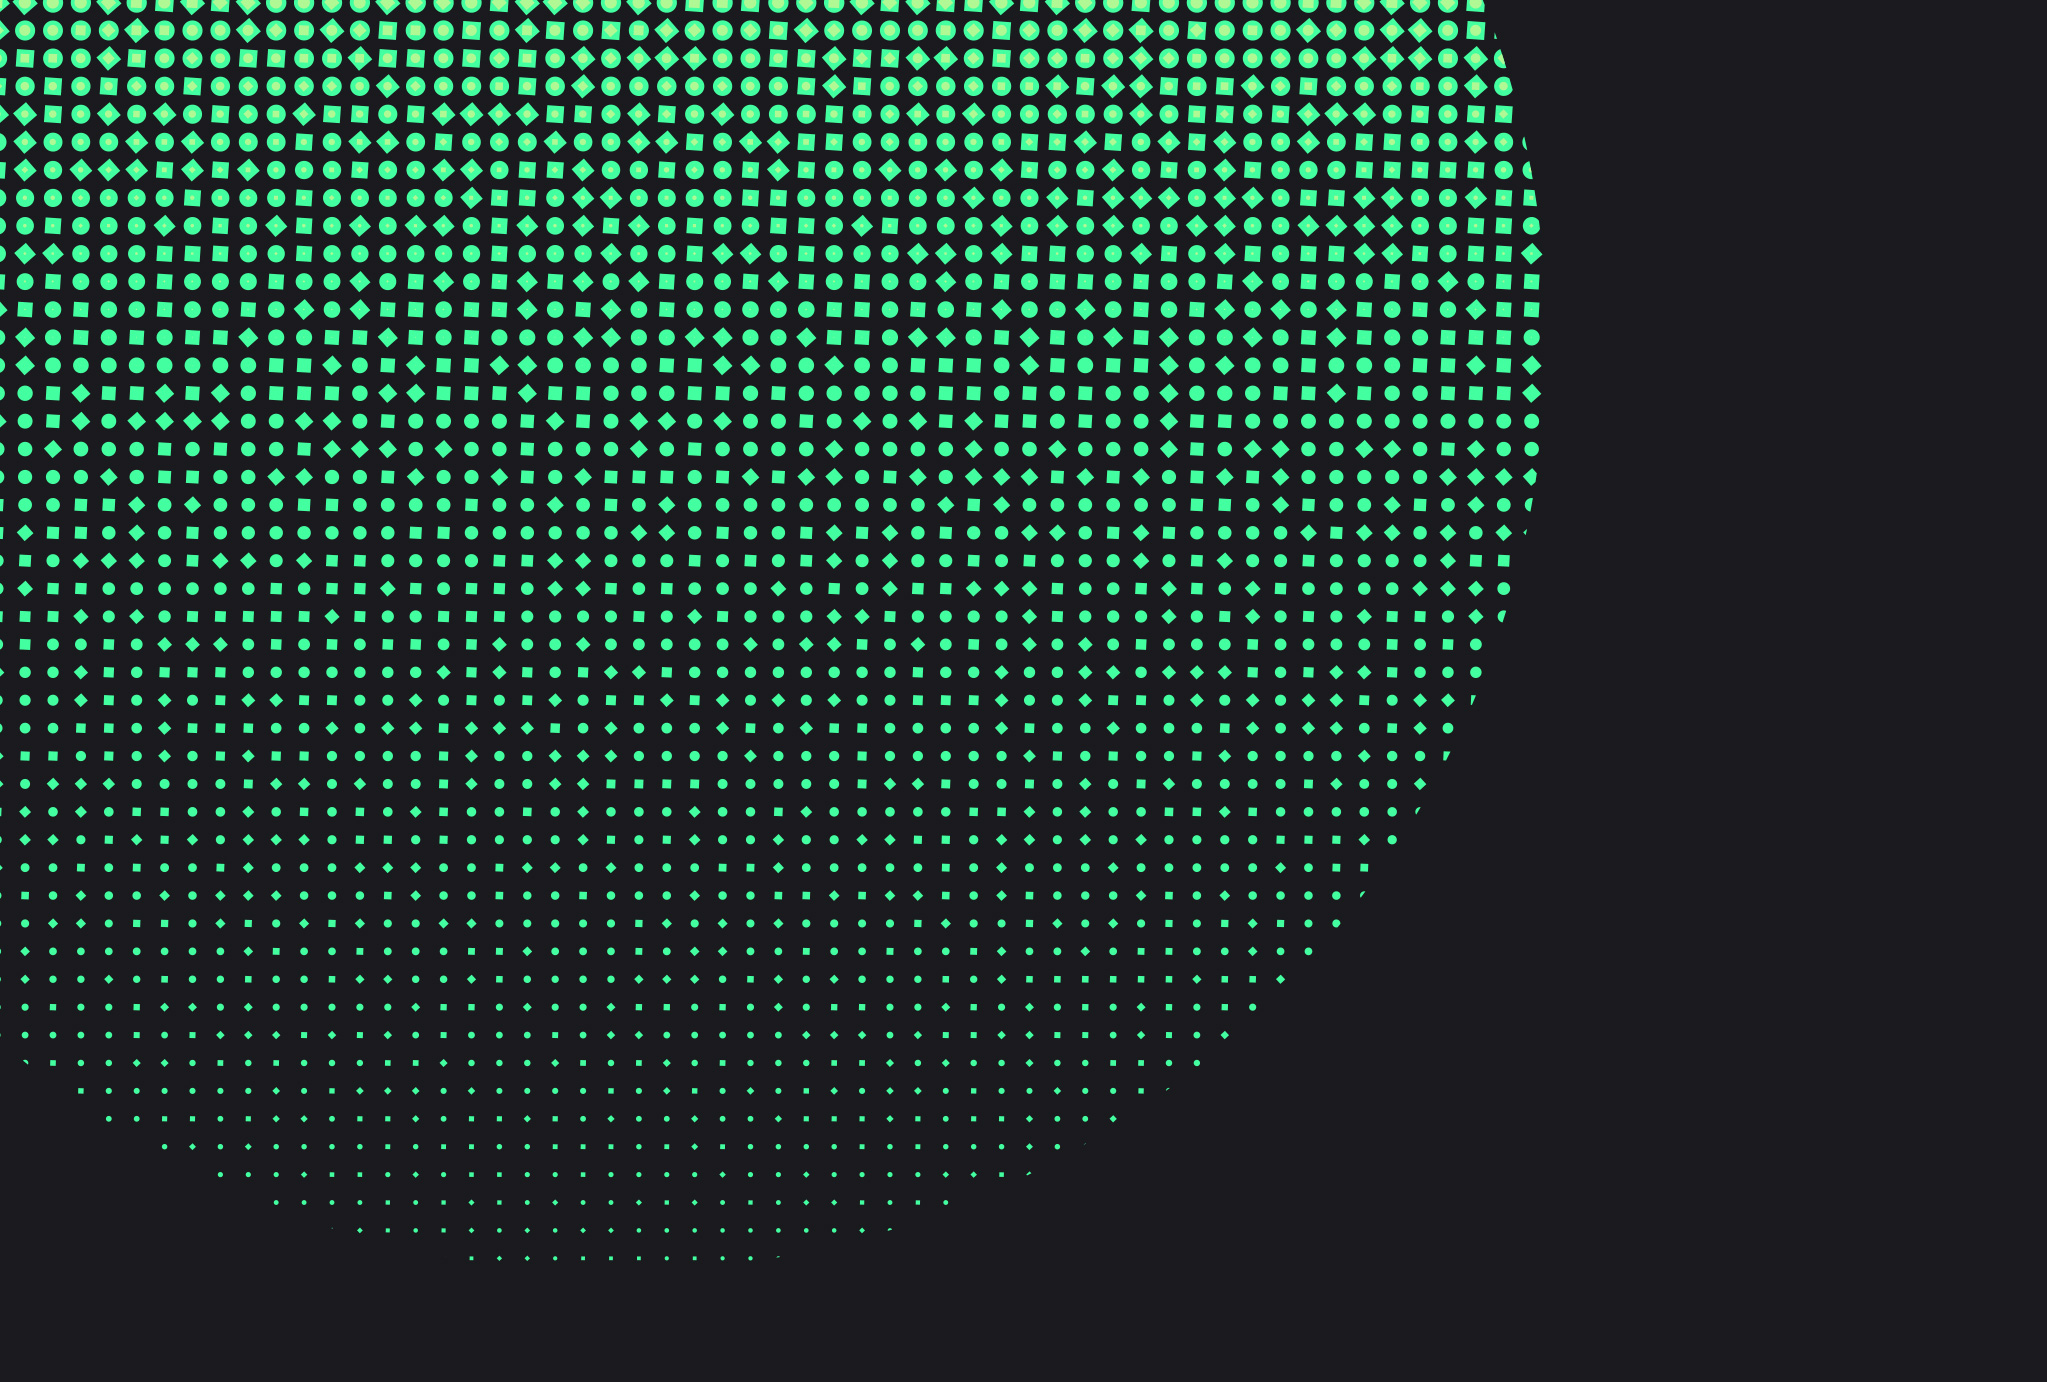 detail of twisted colour blend in green, fading out to the smallest dot size that can be printed on black background